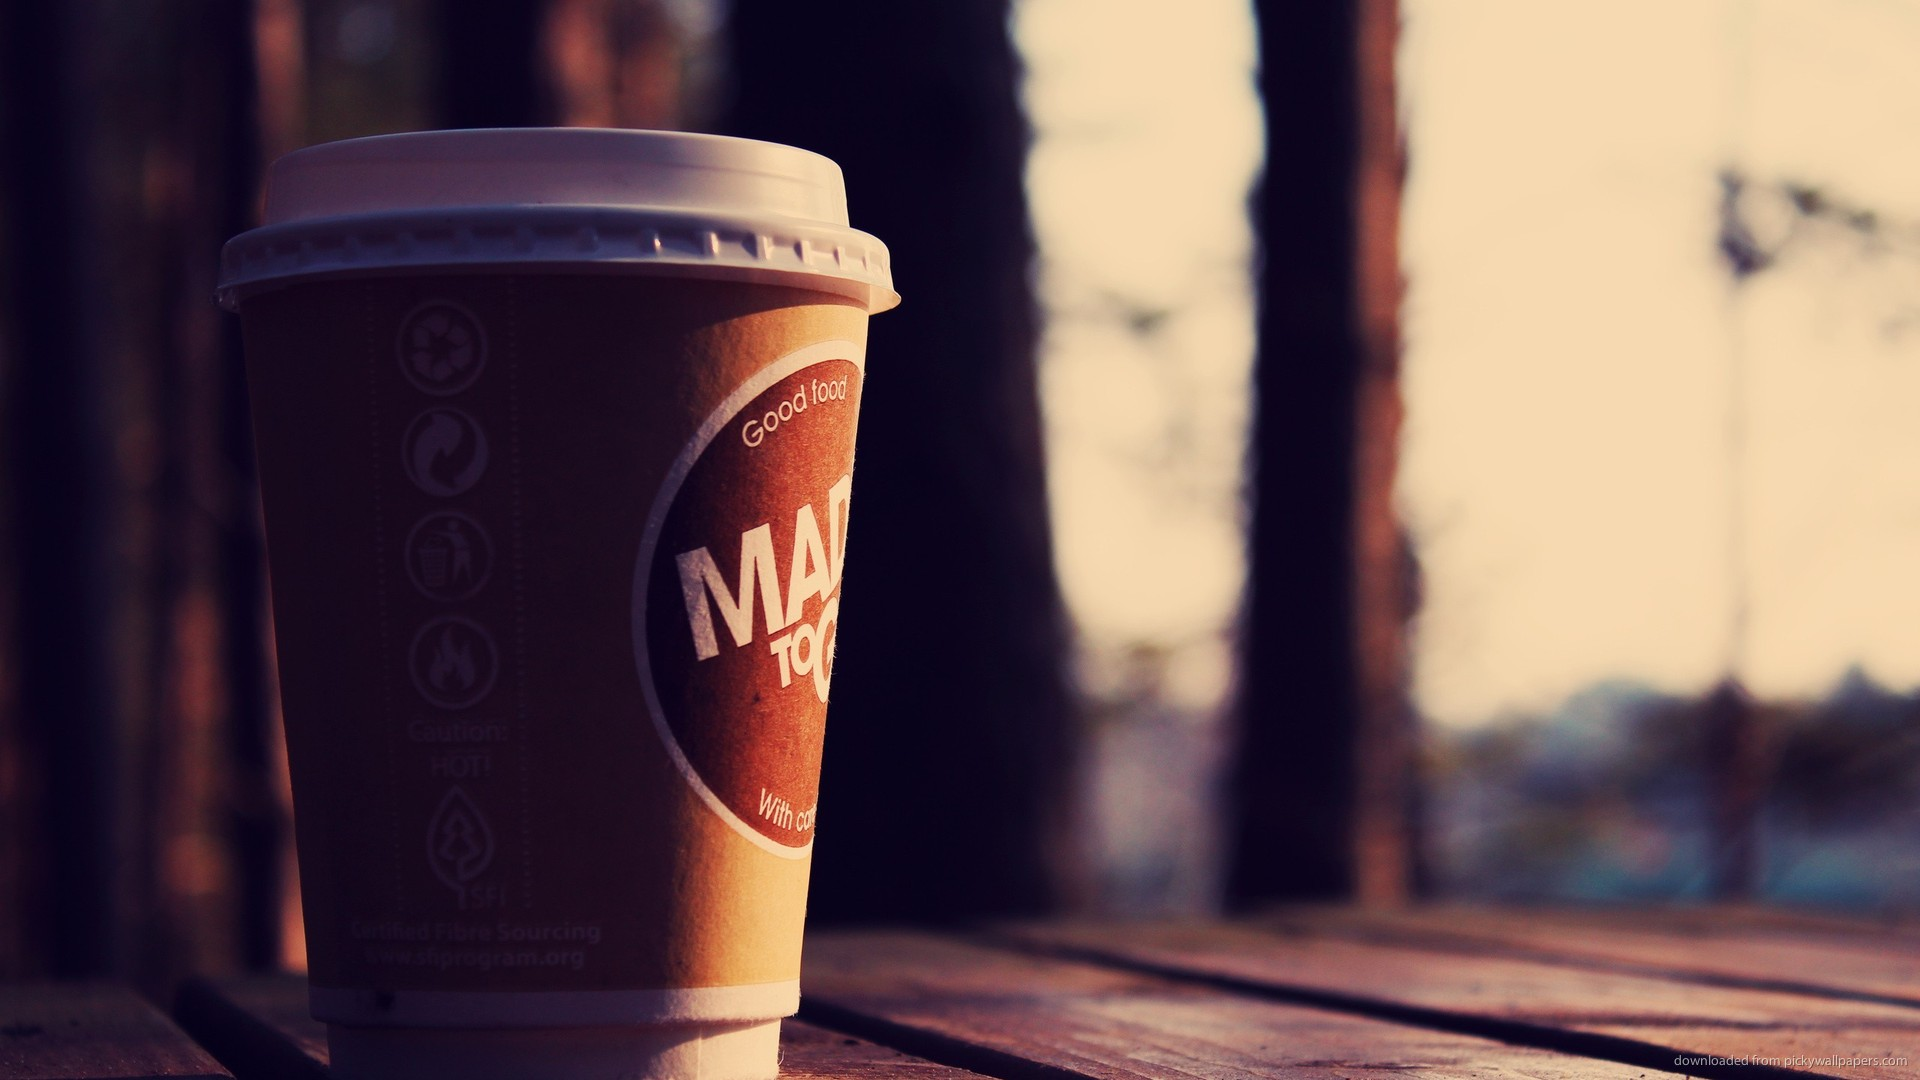 HD A Cup Of Coffee To Go Wallpaper 1920x1080